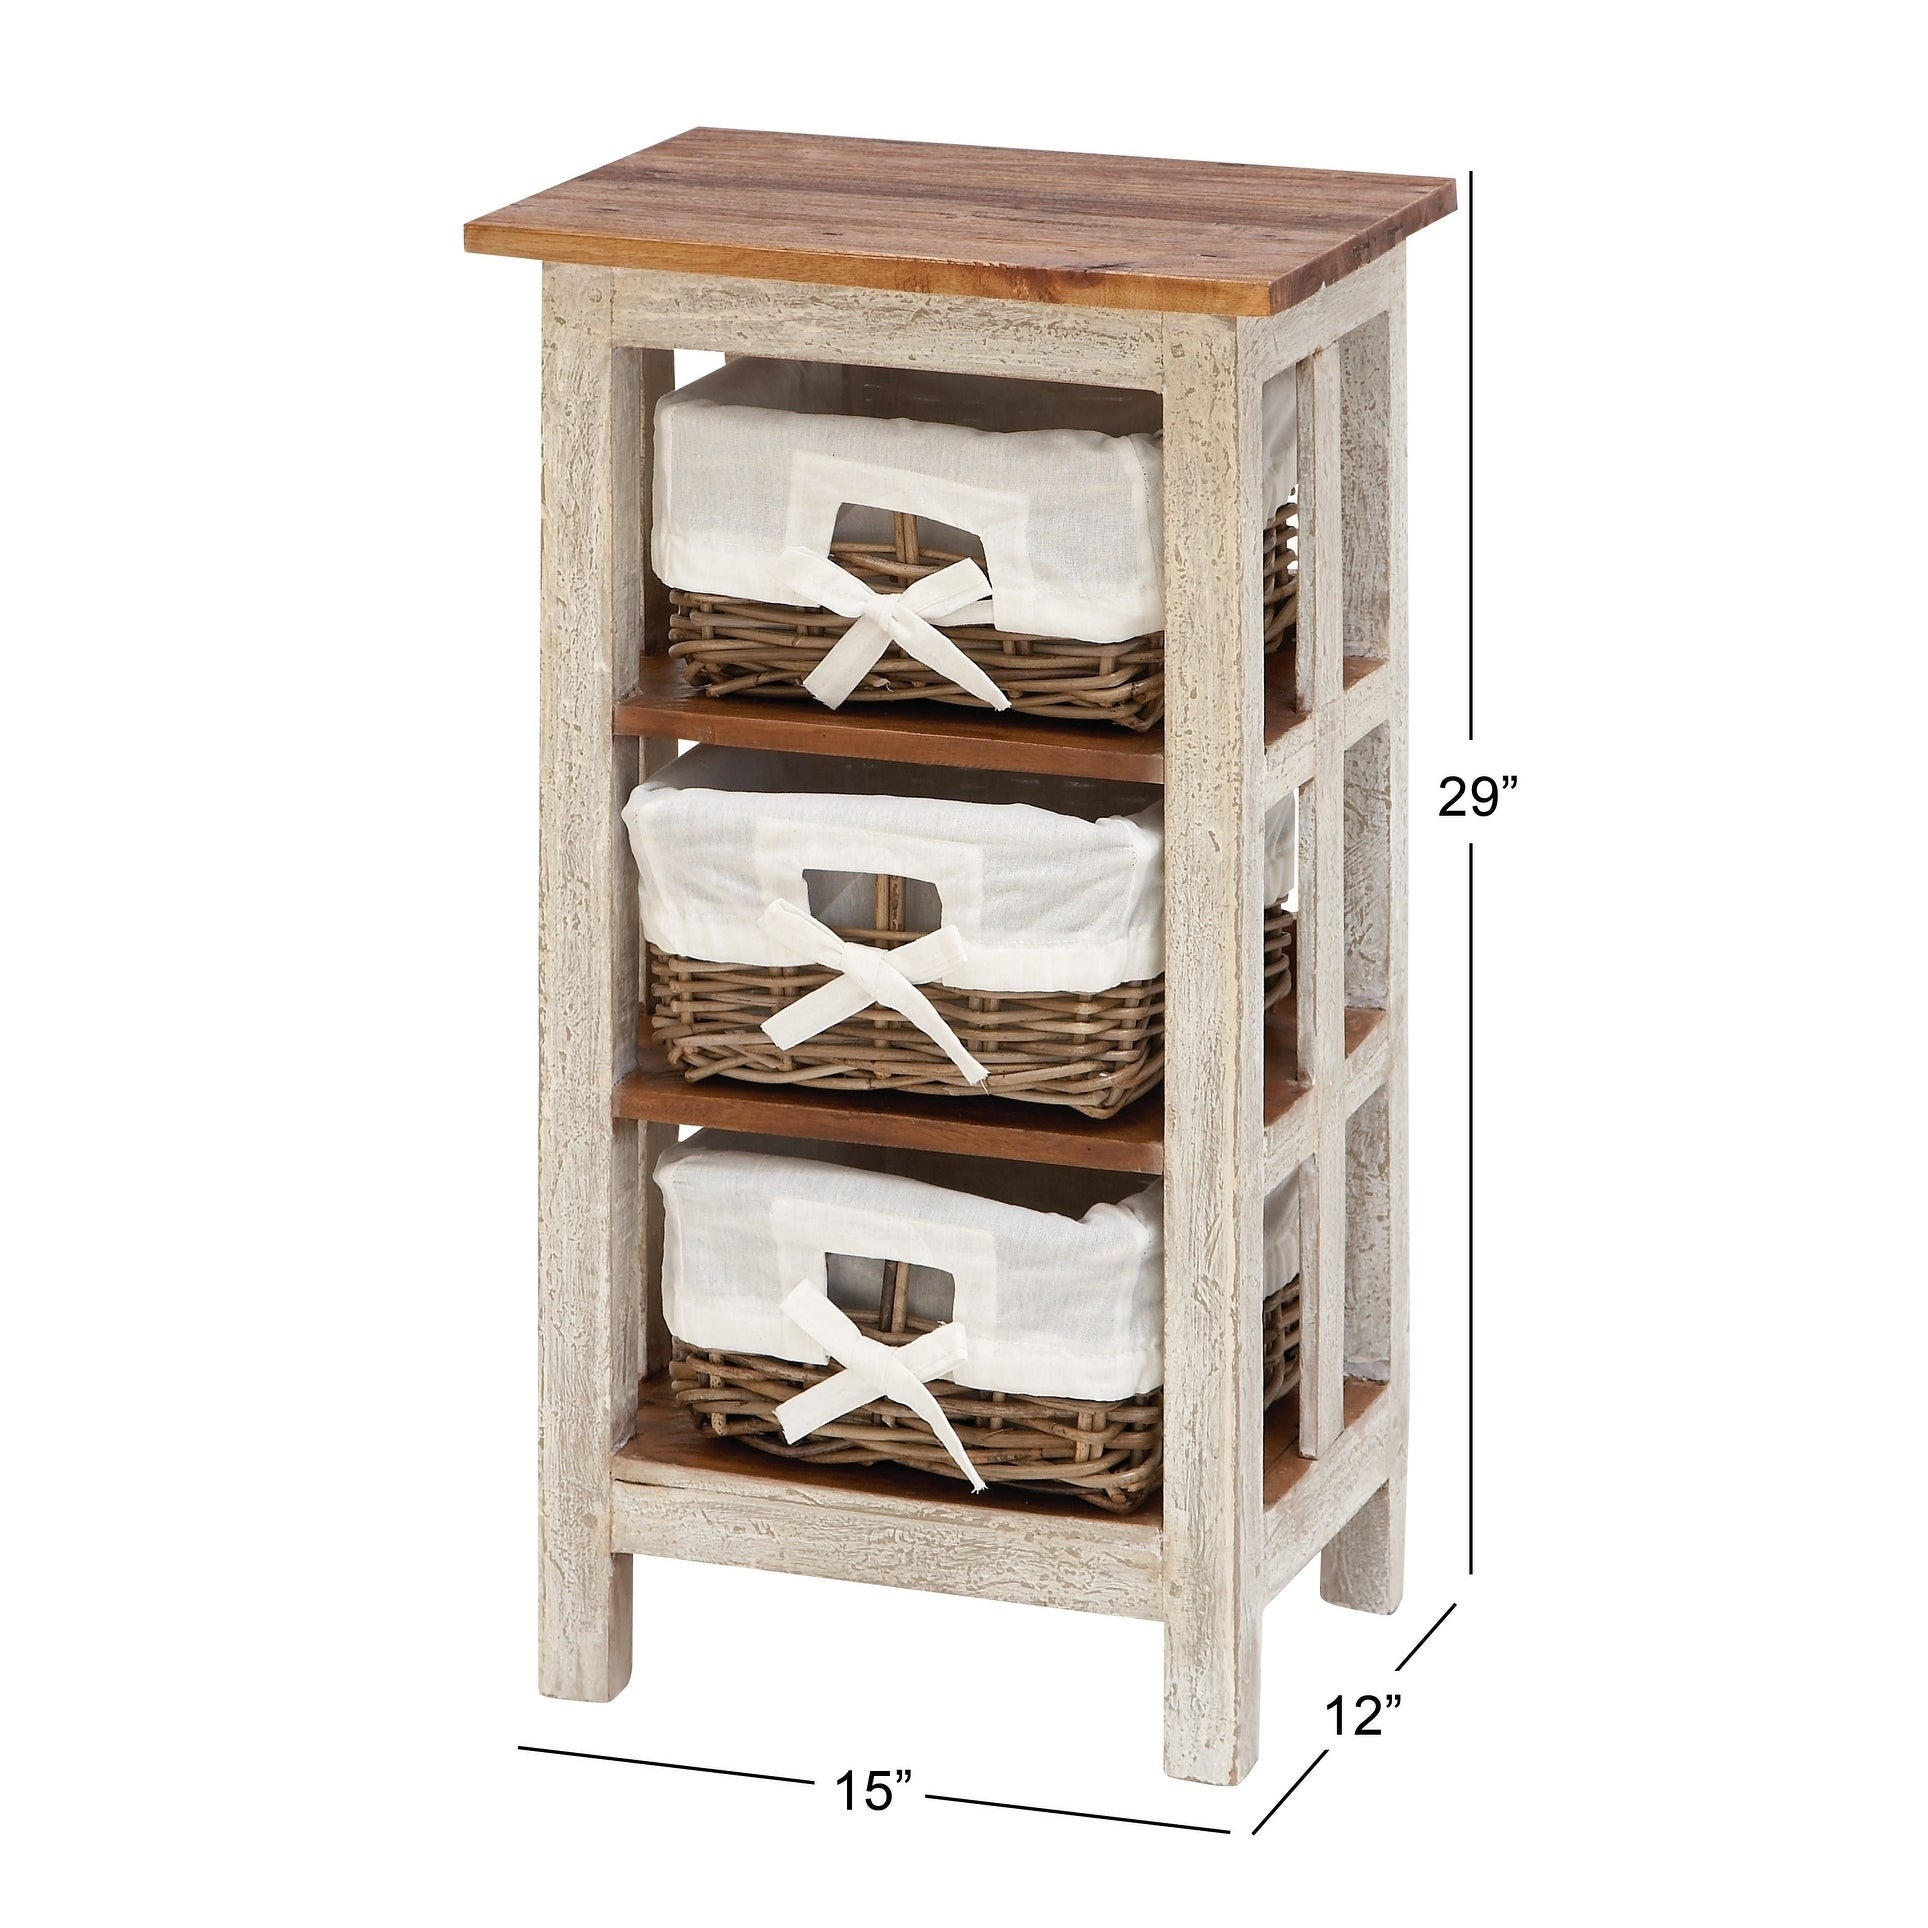 Shop Farmhouse 29 X 15 Inch White Wood And Rattan Cabinet By Studio 350    Free Shipping Today   Overstock   9723703